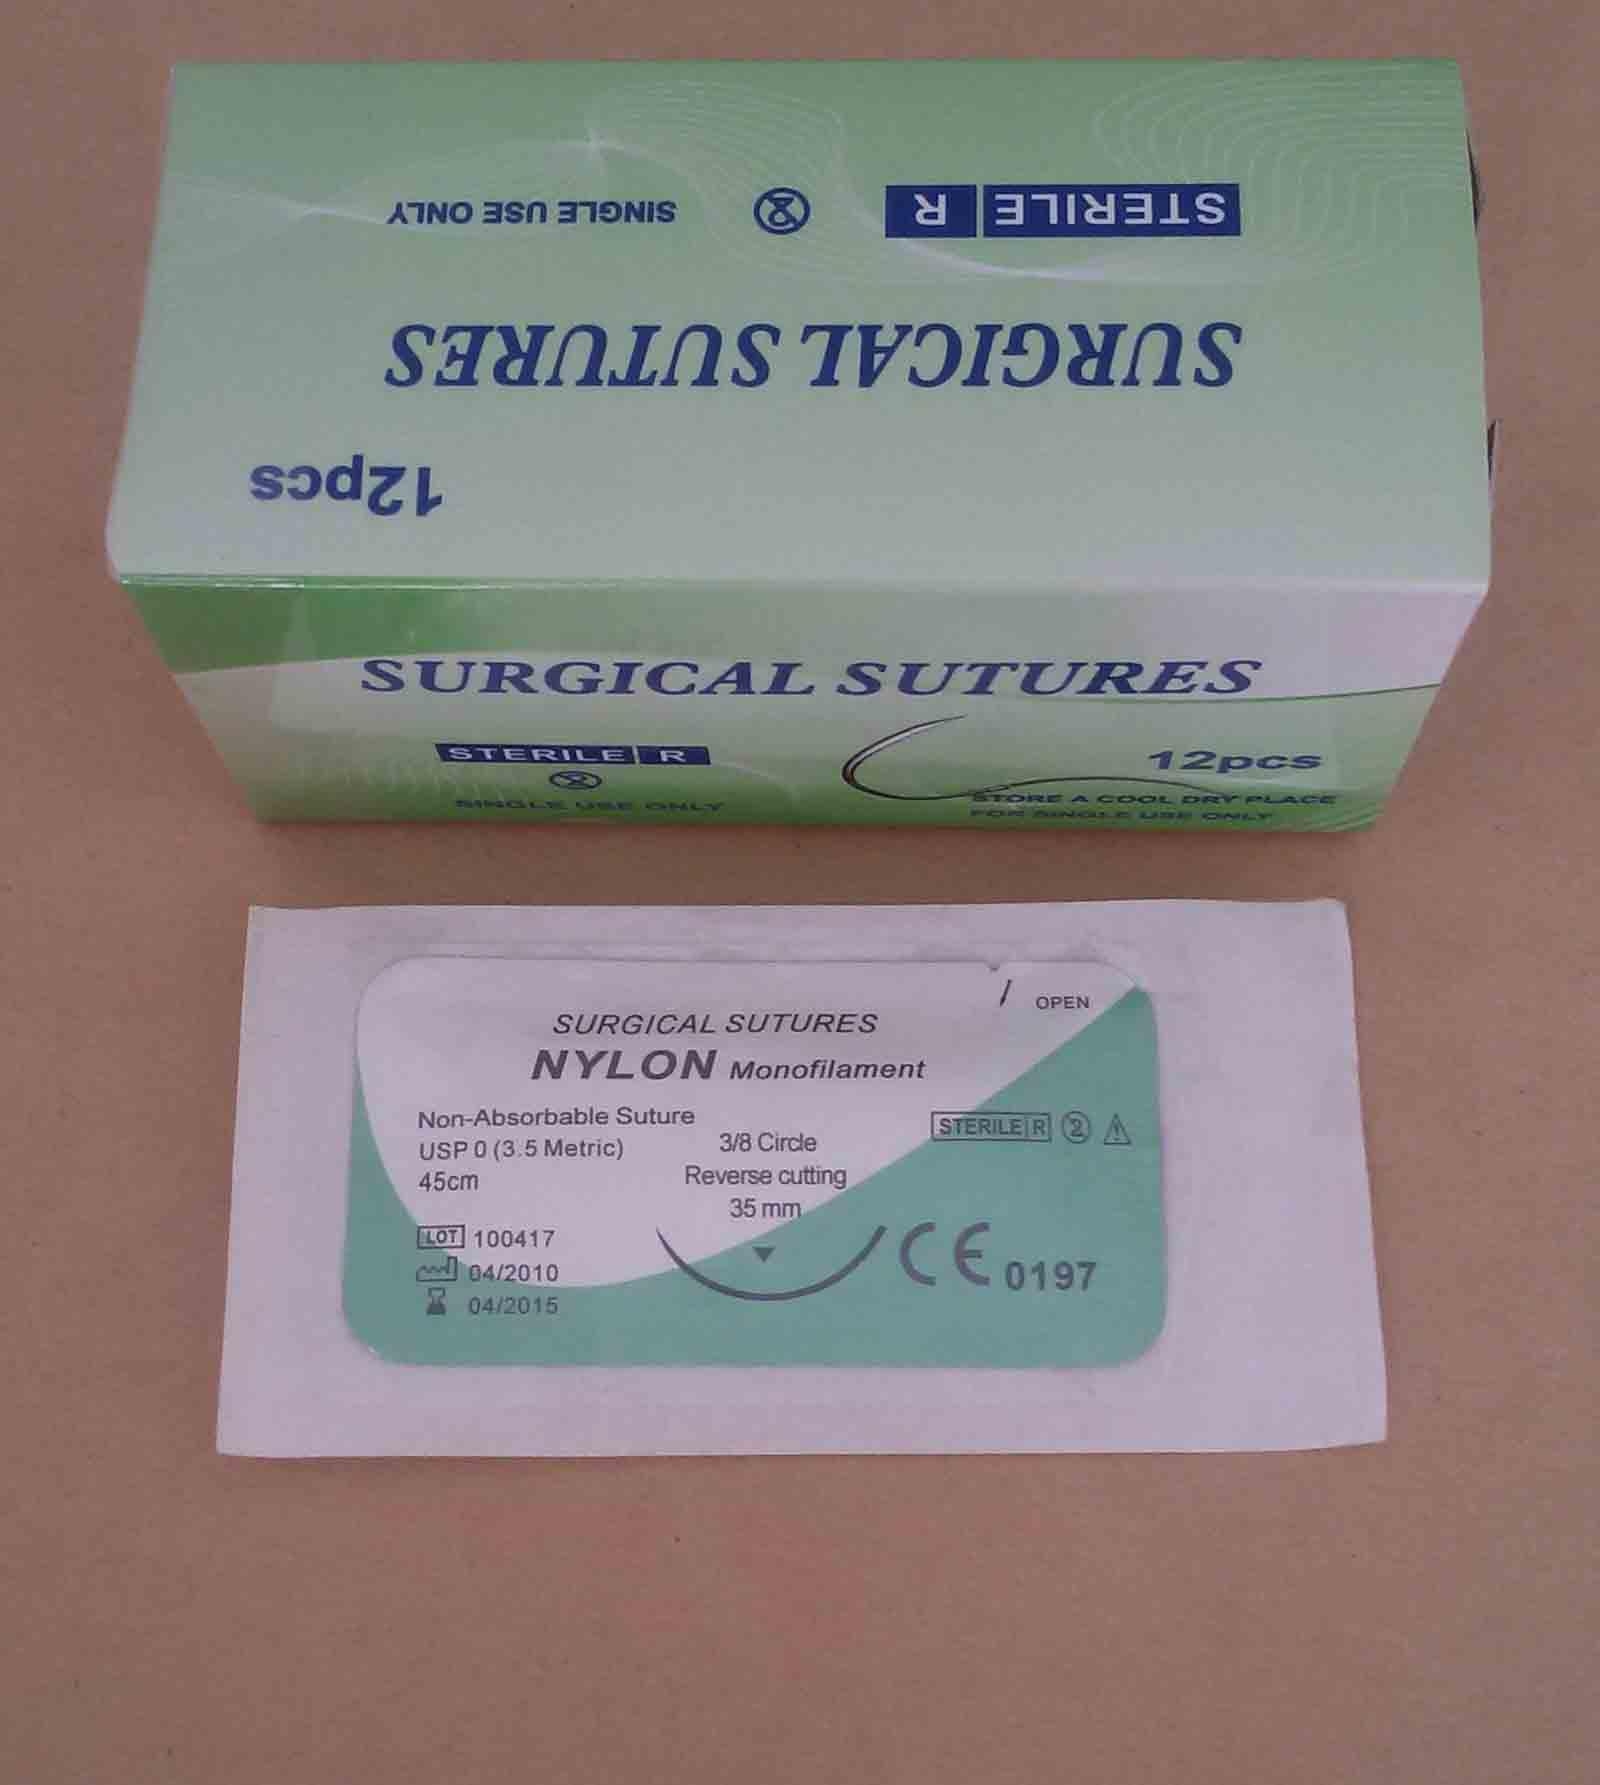 Surgical Suture Nylon Monofilament